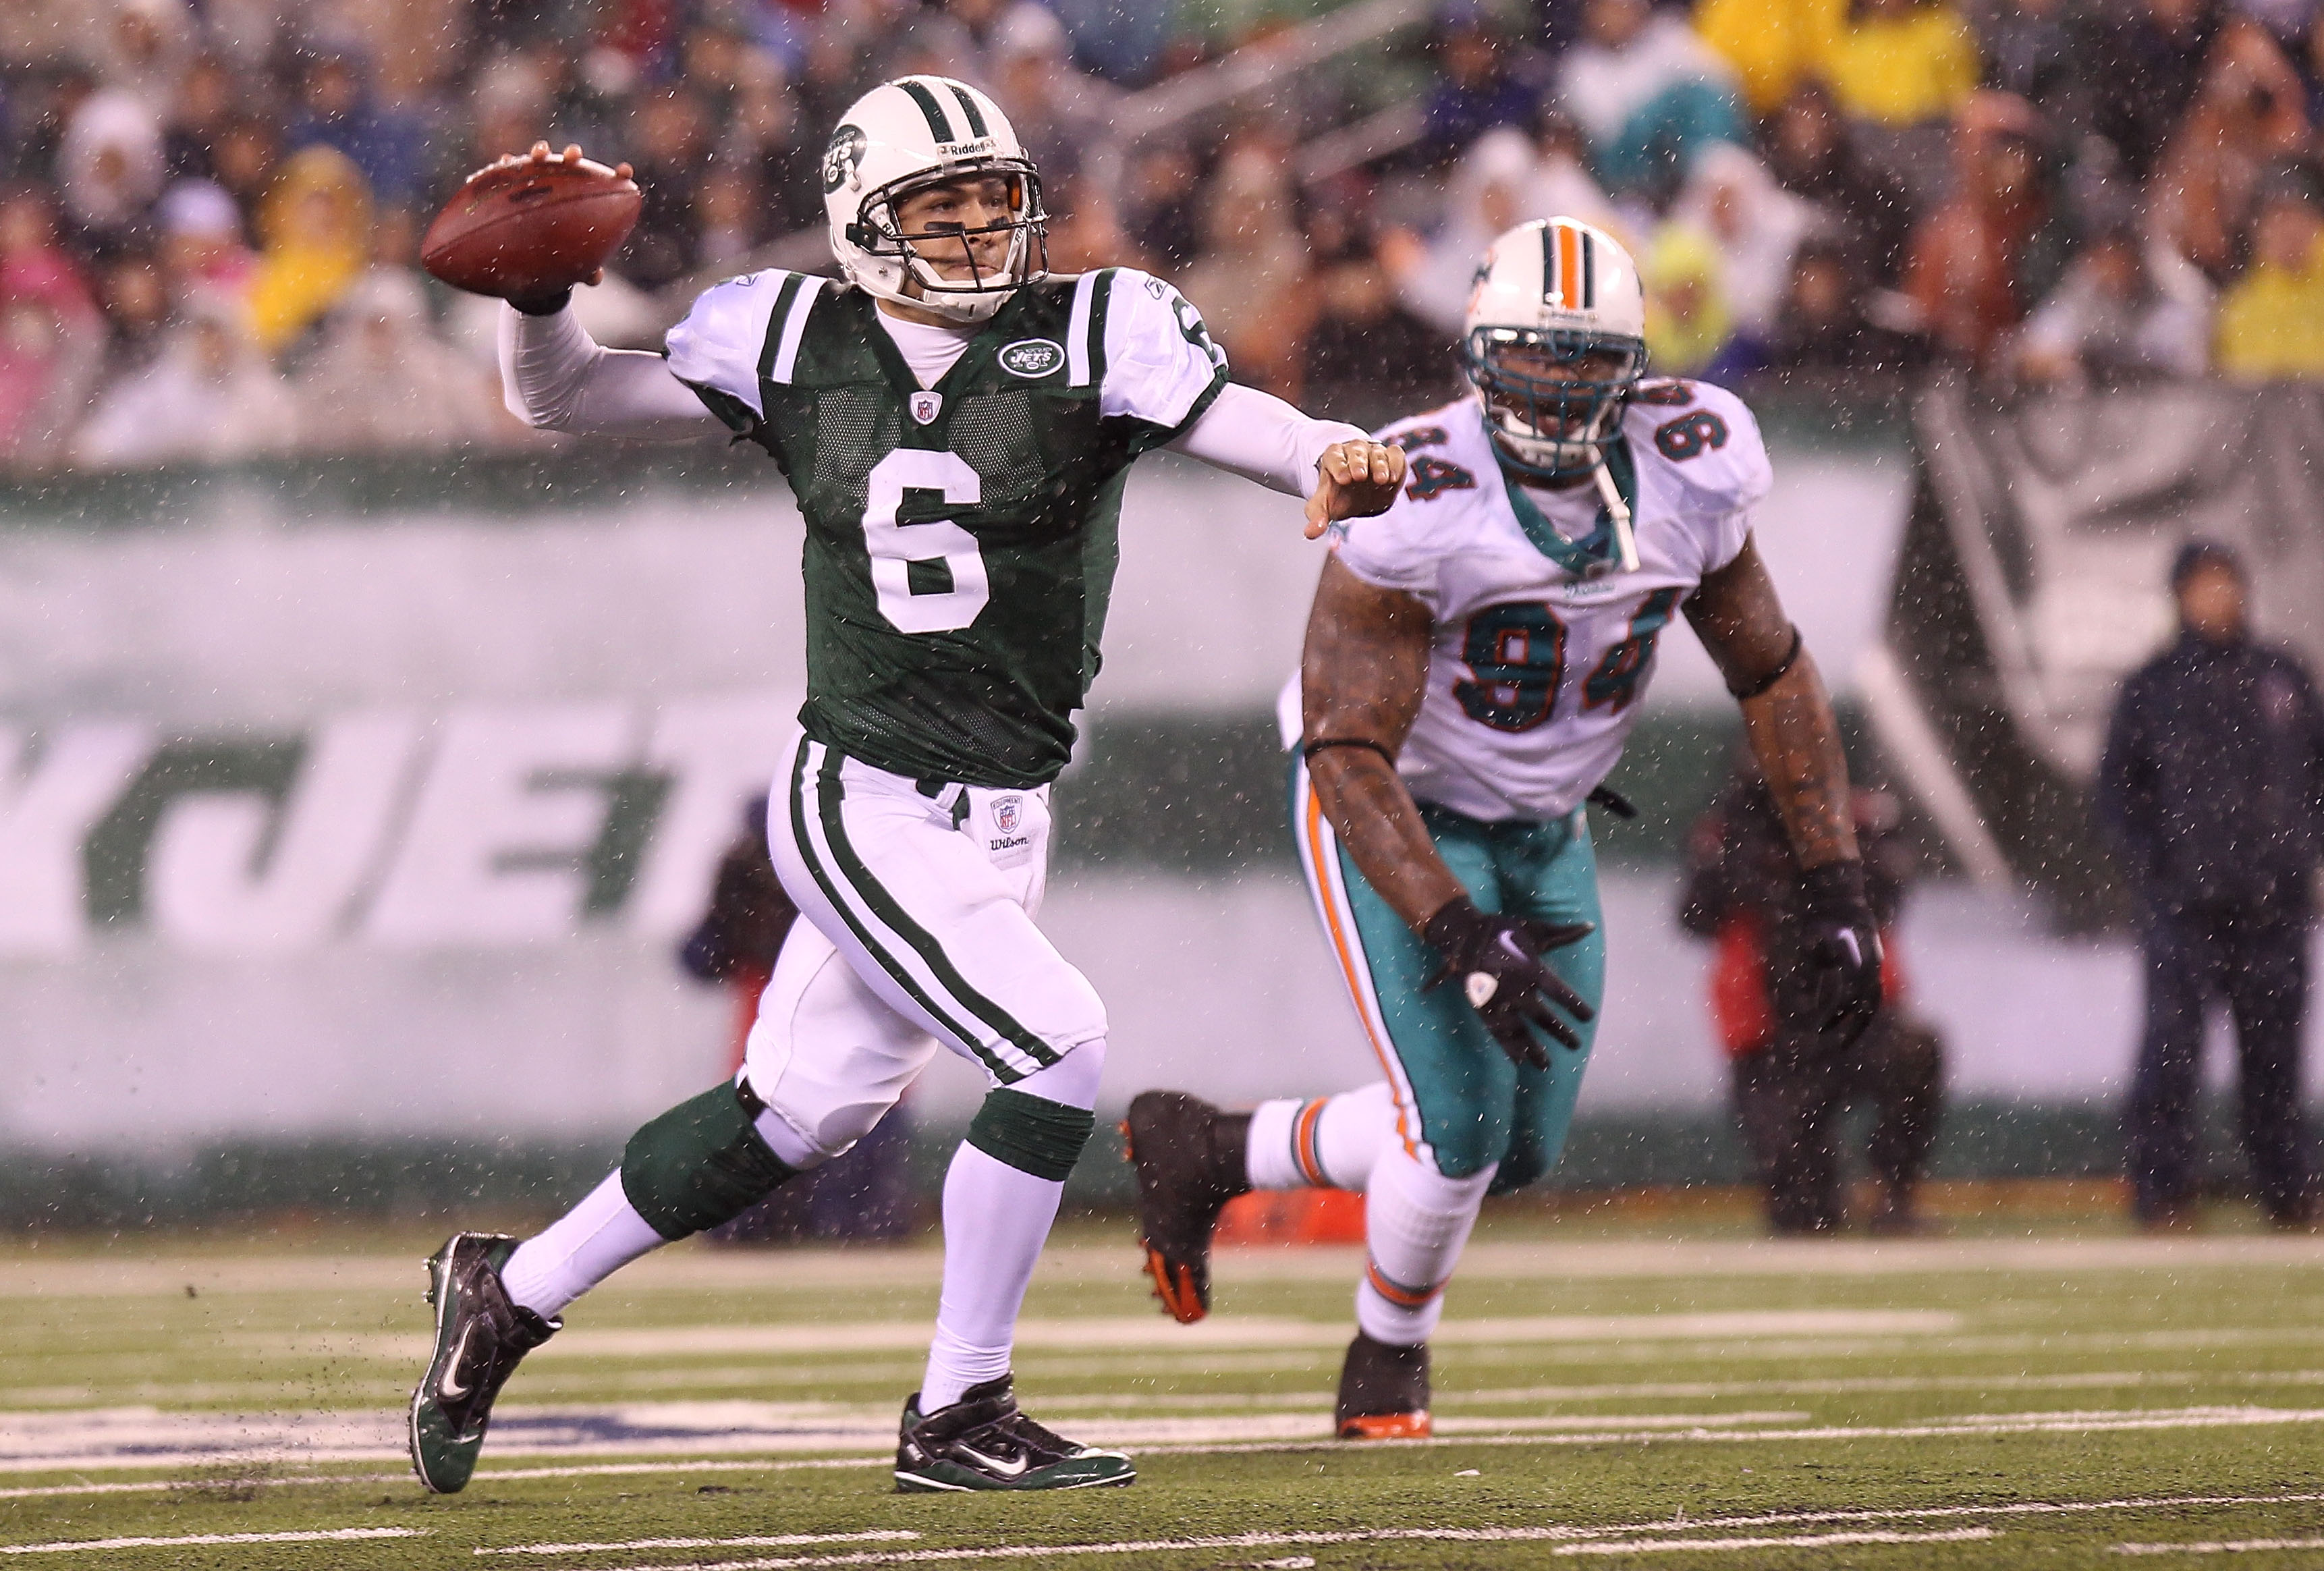 EAST RUTHERFORD, NJ - DECEMBER 12: Mark Sanchez #6 of the New York Jets opens up to pass against the Miami Dolphins at New Meadowlands Stadium on December 12, 2010 in East Rutherford, New Jersey.  (Photo by Nick Laham/Getty Images)